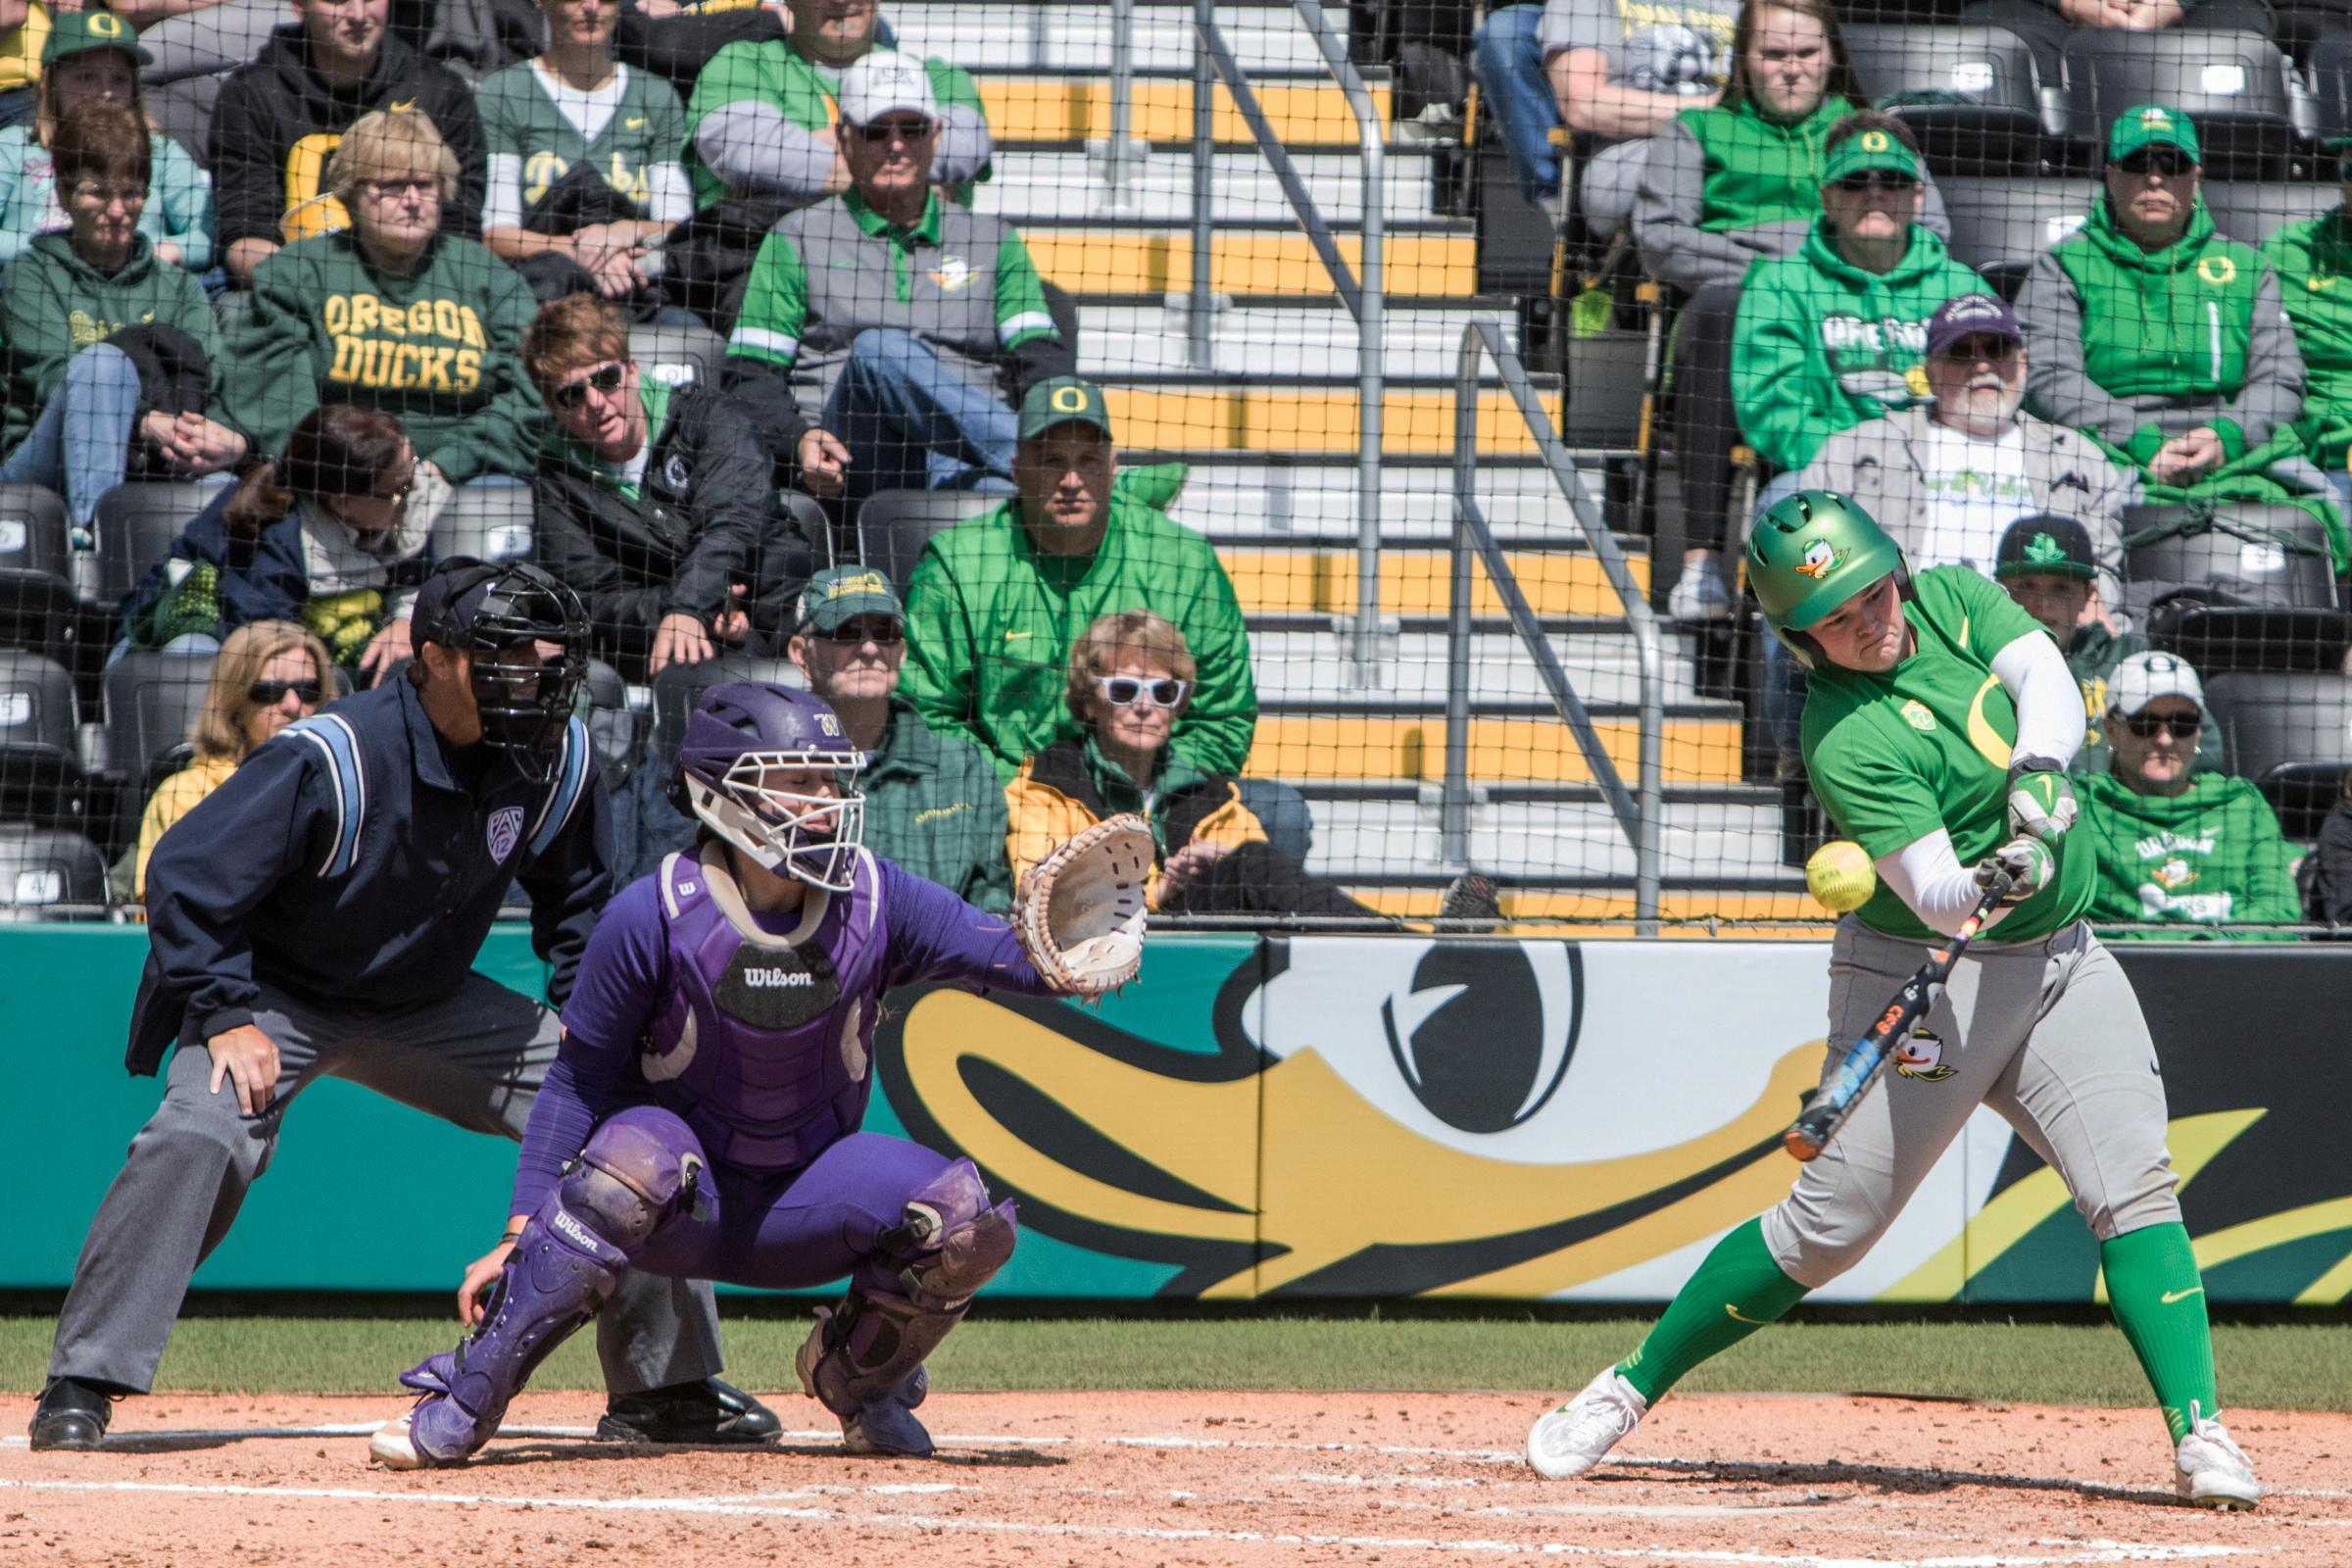 Oregon Ducks infielder Madi Bishop (#23) swings low on a pitch. In the final game of a three-game series, the University of Washington Huskies defeated the Oregon Ducks 5-3.  The Ducks led through the bottom of the 7th inning, but Washington's Morganne Flores (#47) tied it up with a two-run double.  Flores drove in two more runs in the 9th to take the lead.  Photo by Austin Hicks, Oregon News Lab